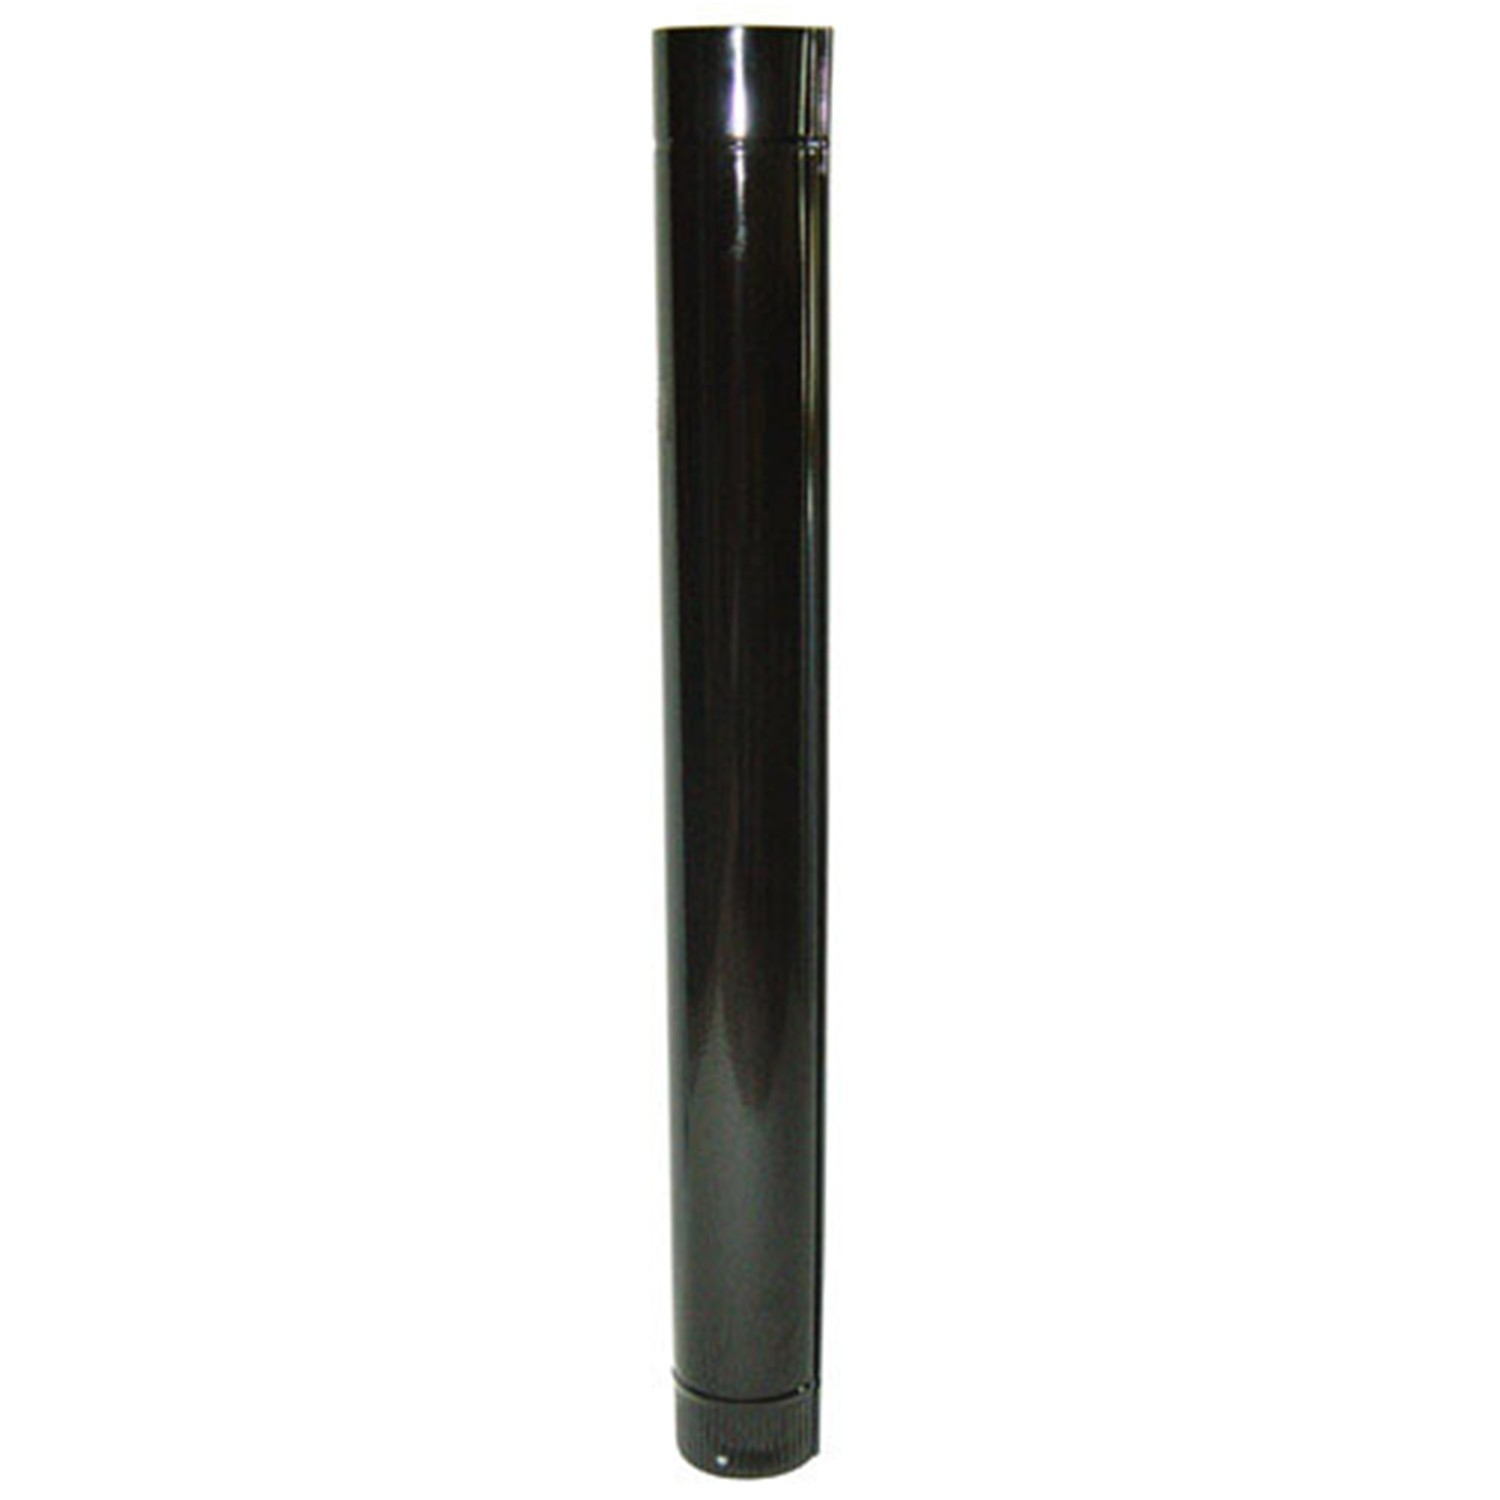 tubo-estufa-color-negro-vitrificado-de-175-mm